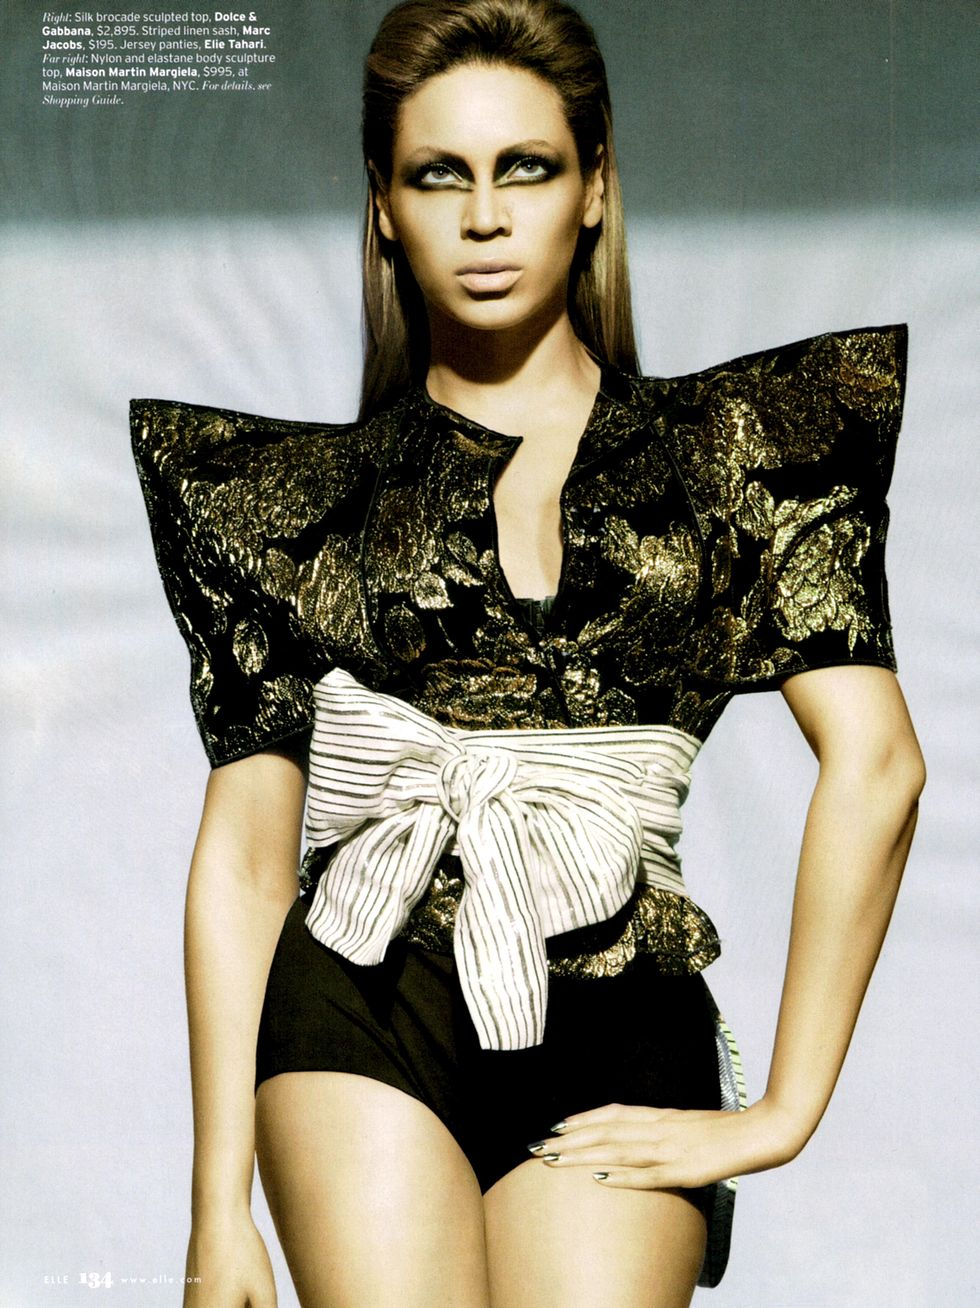 beyonce-knowles-elle-magazine-january-2009-01